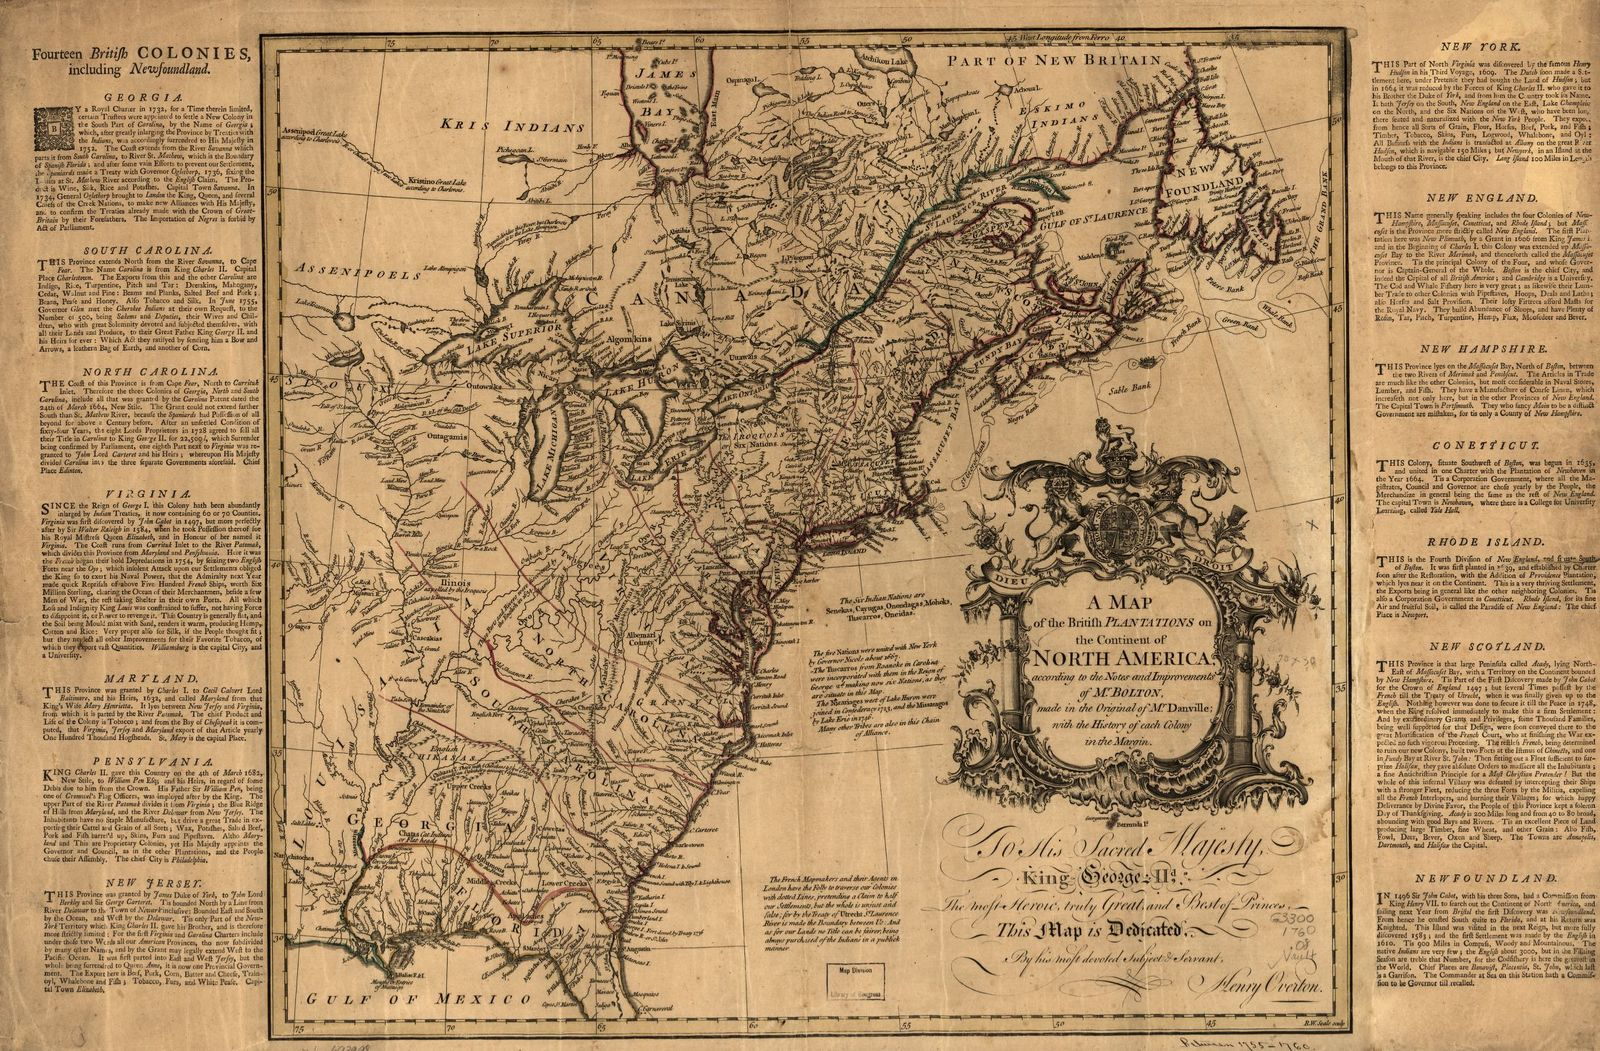 A map of the British plantations on the continent of North America, according to the notes and improvements of Mr. Bolton, made in the original of Mr. Danville; with the history of each colony in the margin.